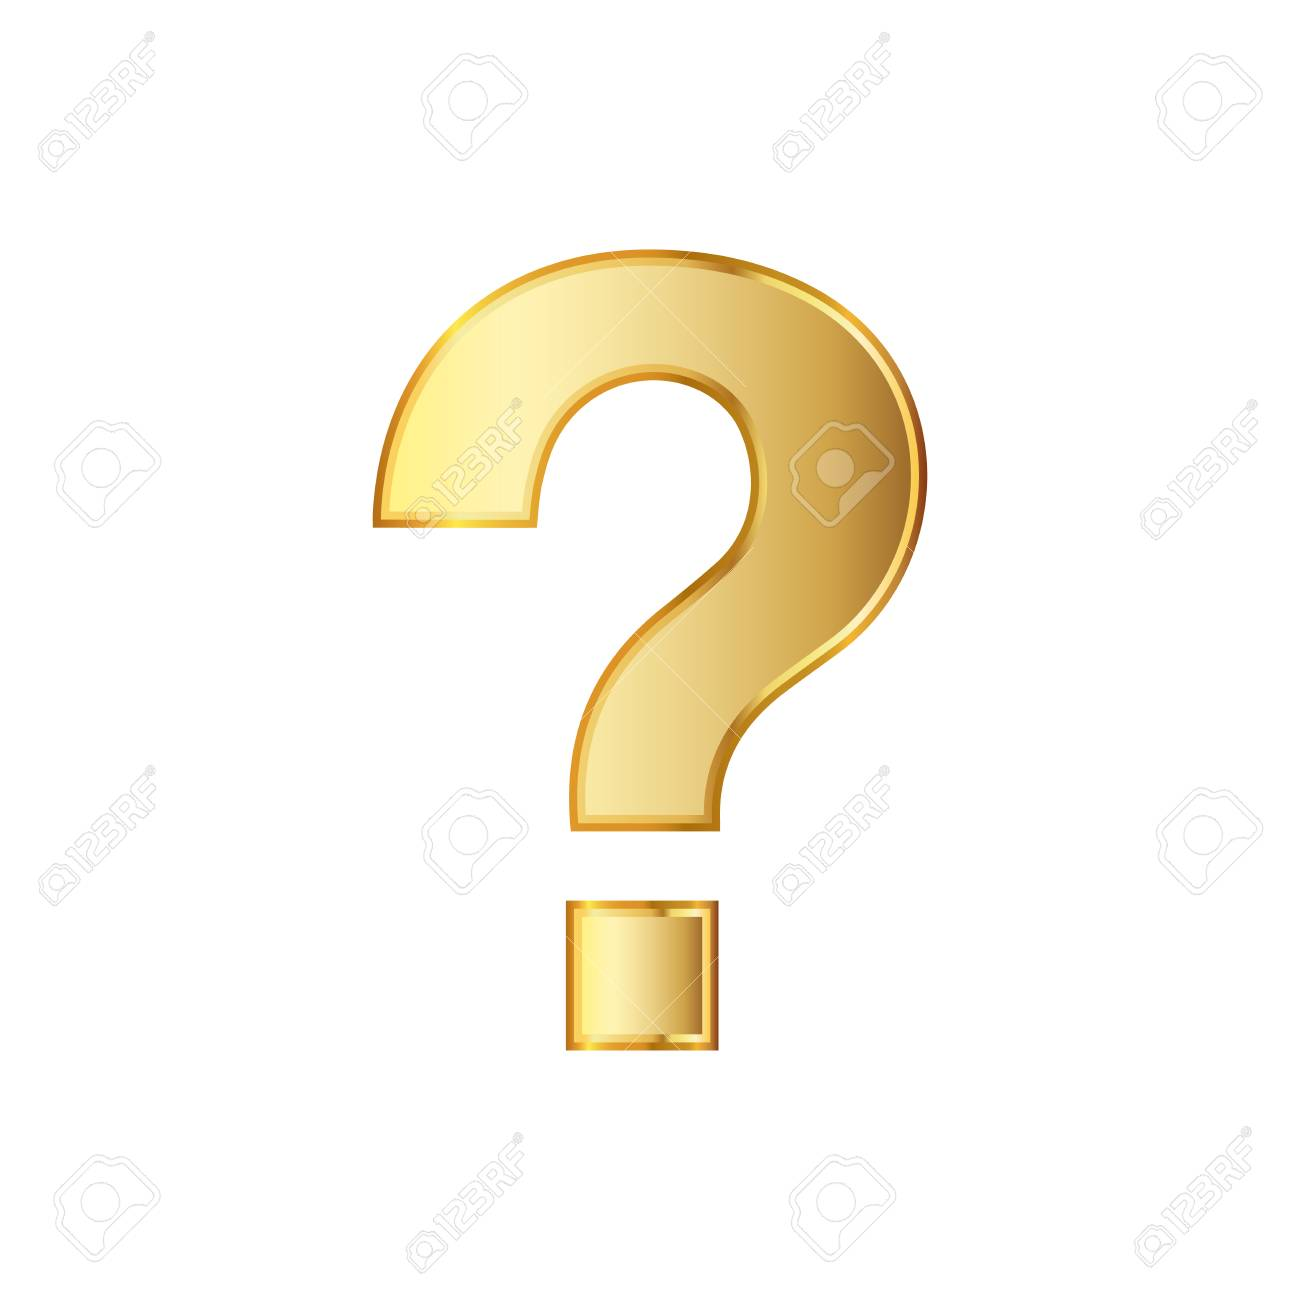 Golden question icon. illustration. Golden question symbol isolated on white background. - 72078964